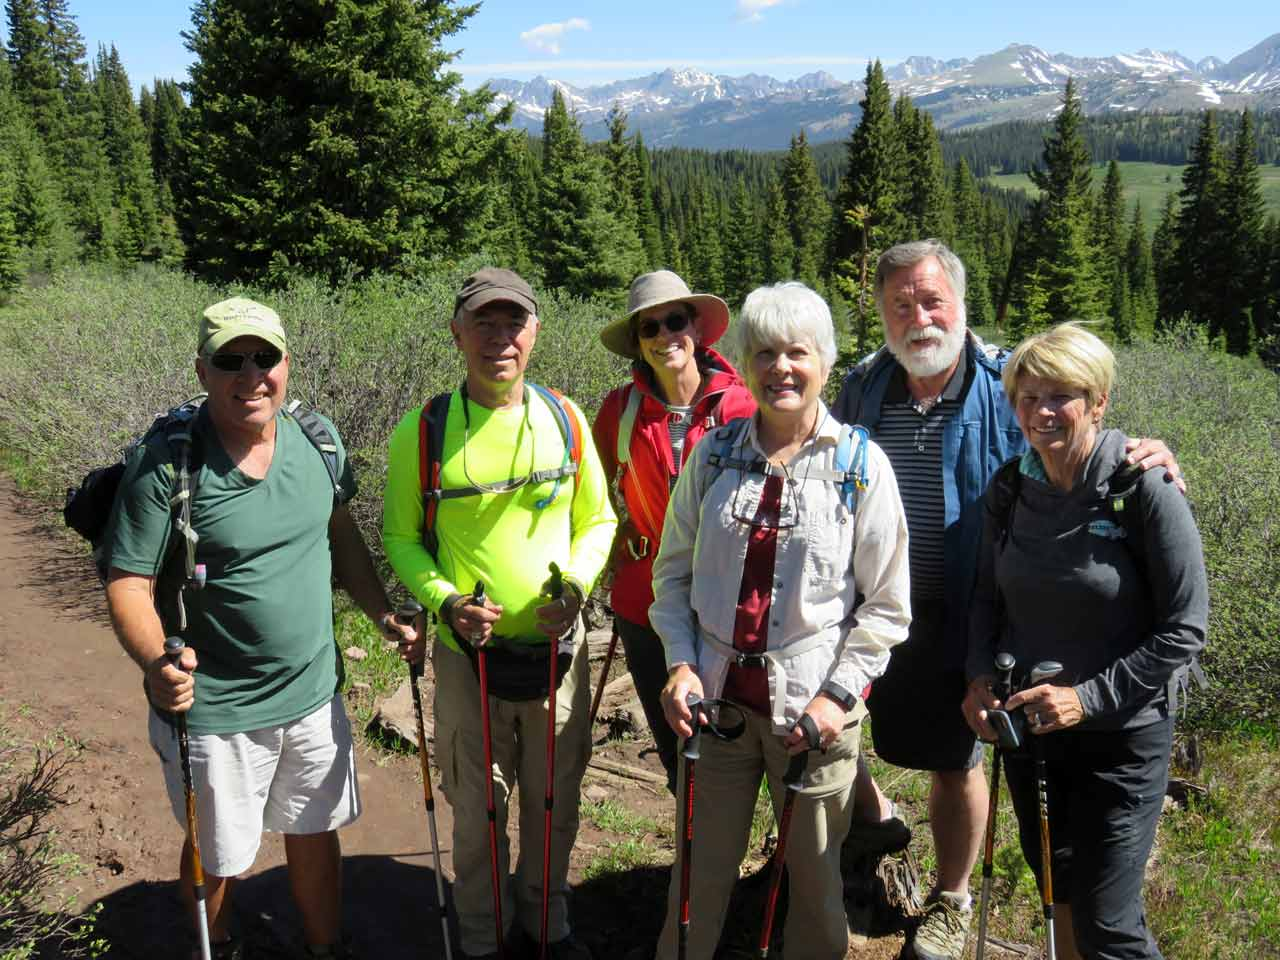 Chuck and Patt Peterson, Jeff and Jane Clark, Schuyler and Phyllis Stuckey hiking at Shrine Pass